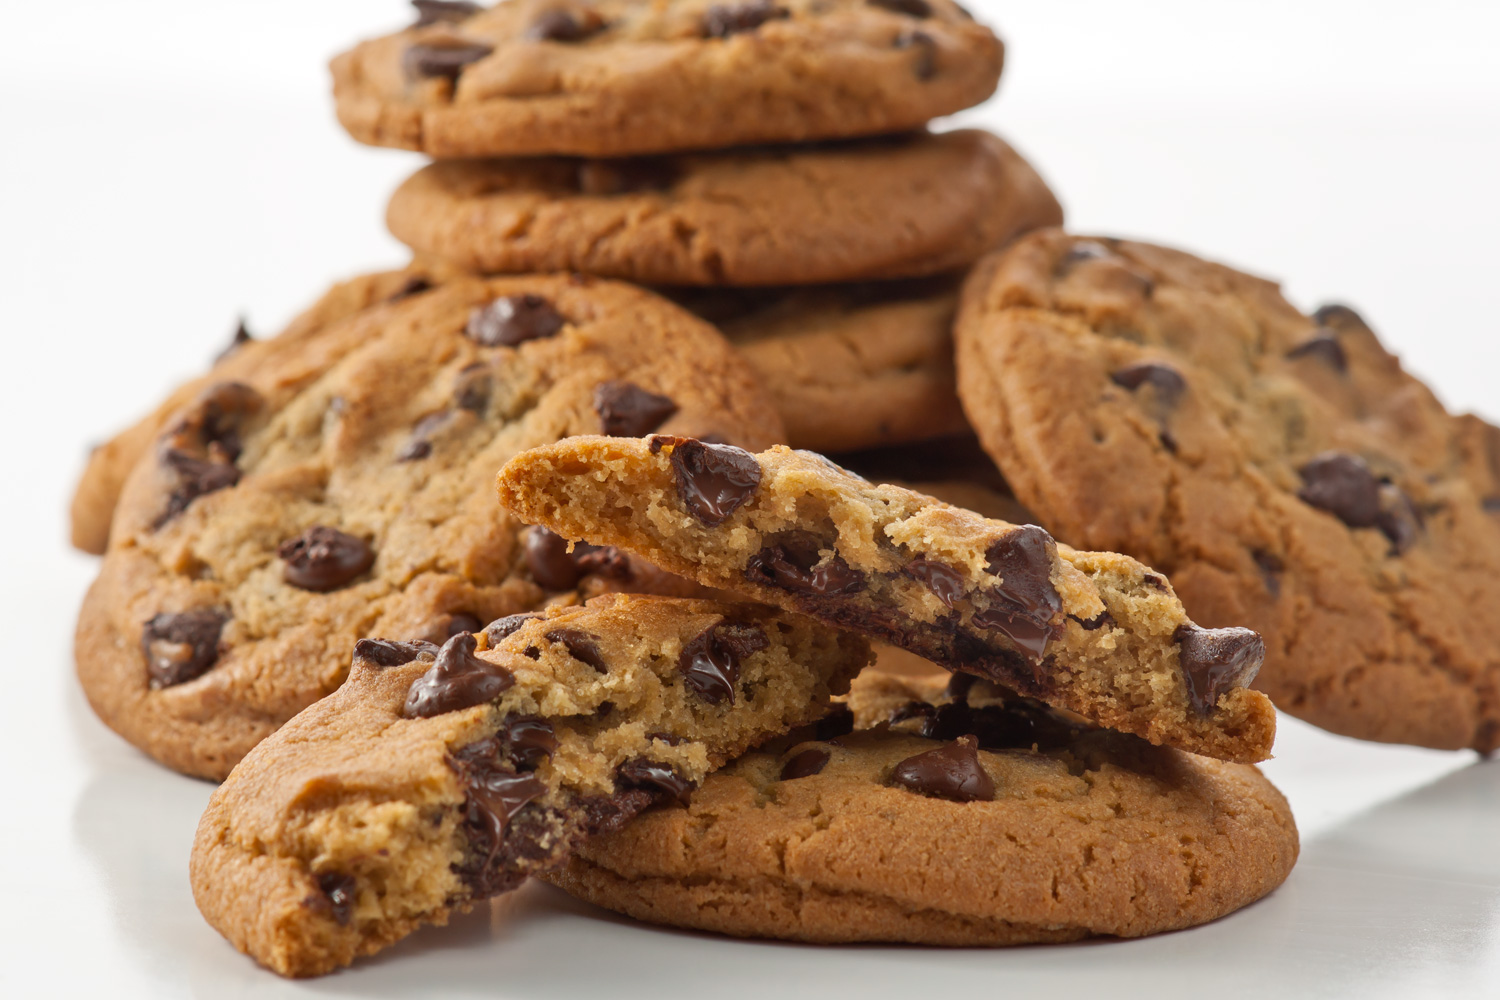 Chocolate Chip - America's most popular cookie through the years. One of our favorites also, every mouthful is bursting at the seams with semi-sweet chocolate. This is the perfect cookie for anywhere, anytime, anyplace.